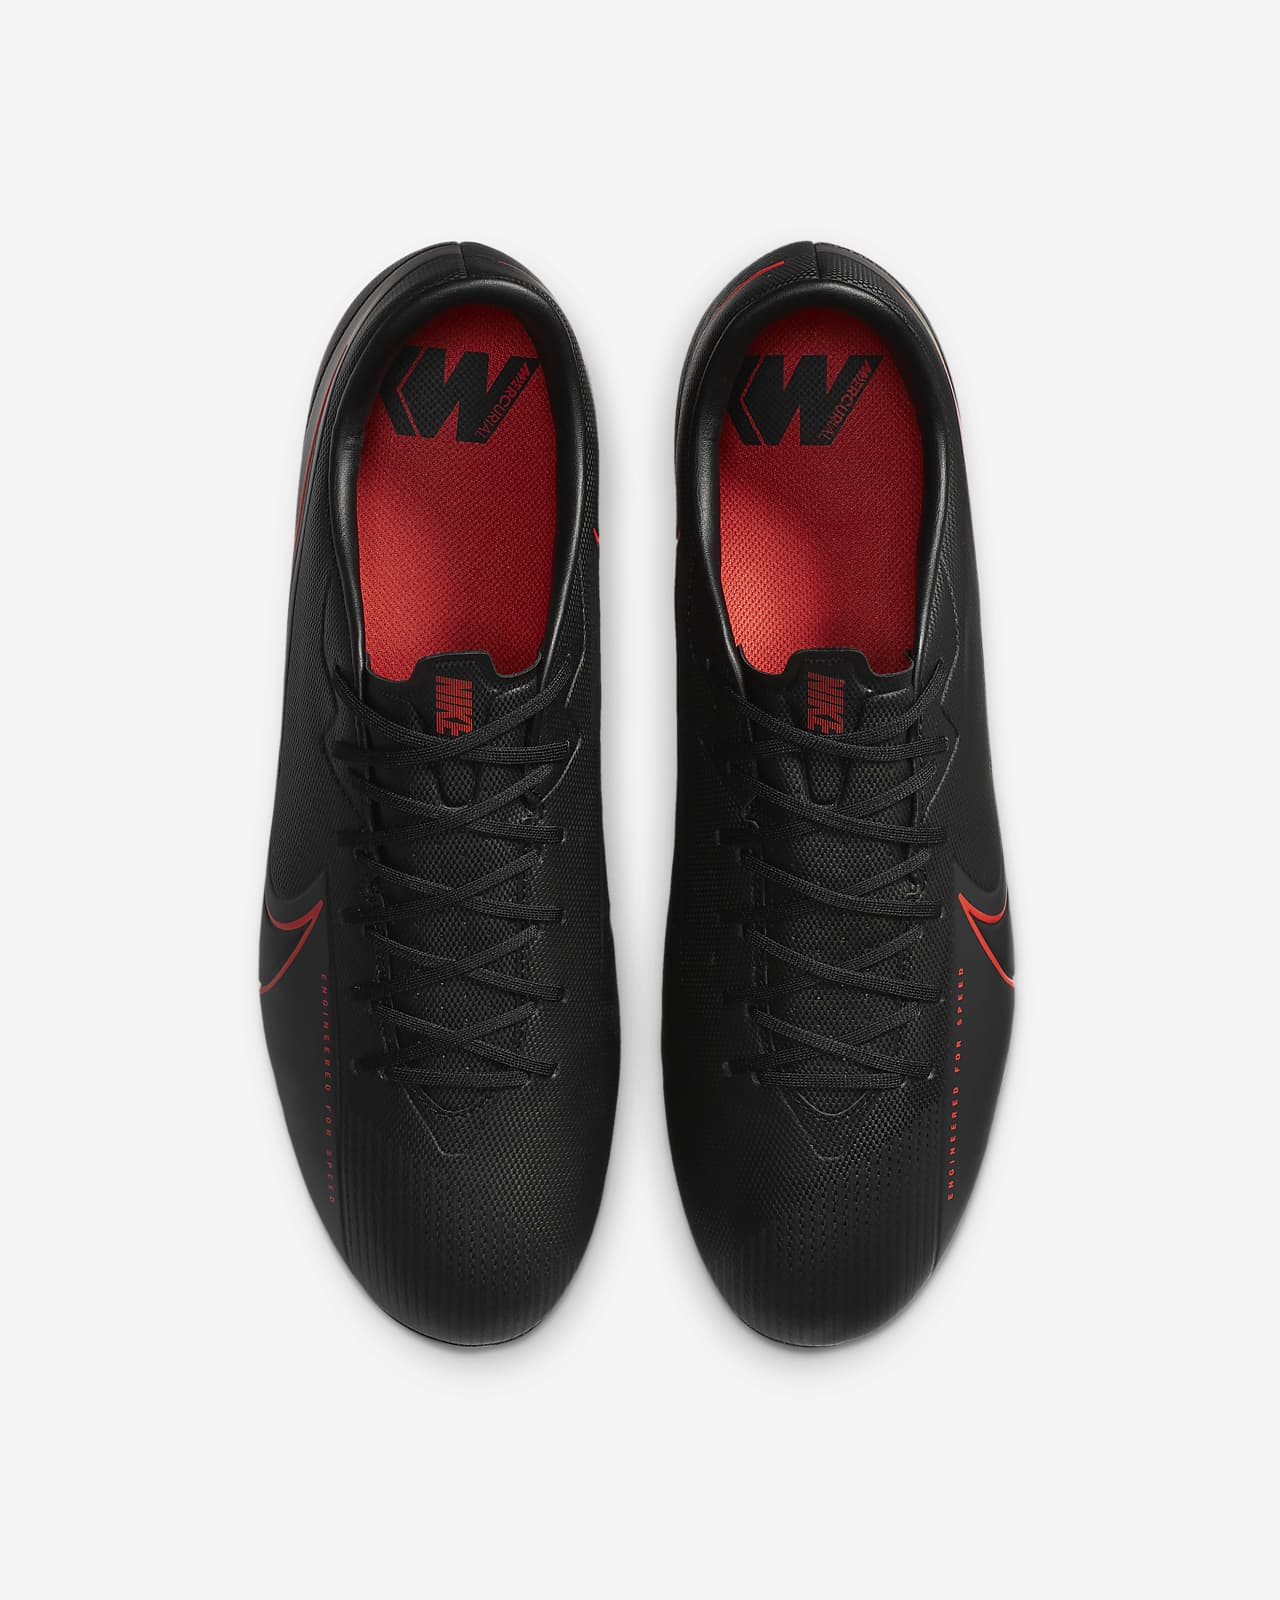 Nike Performance VAPOR 13 CLUB SG Fotballsko blackdark